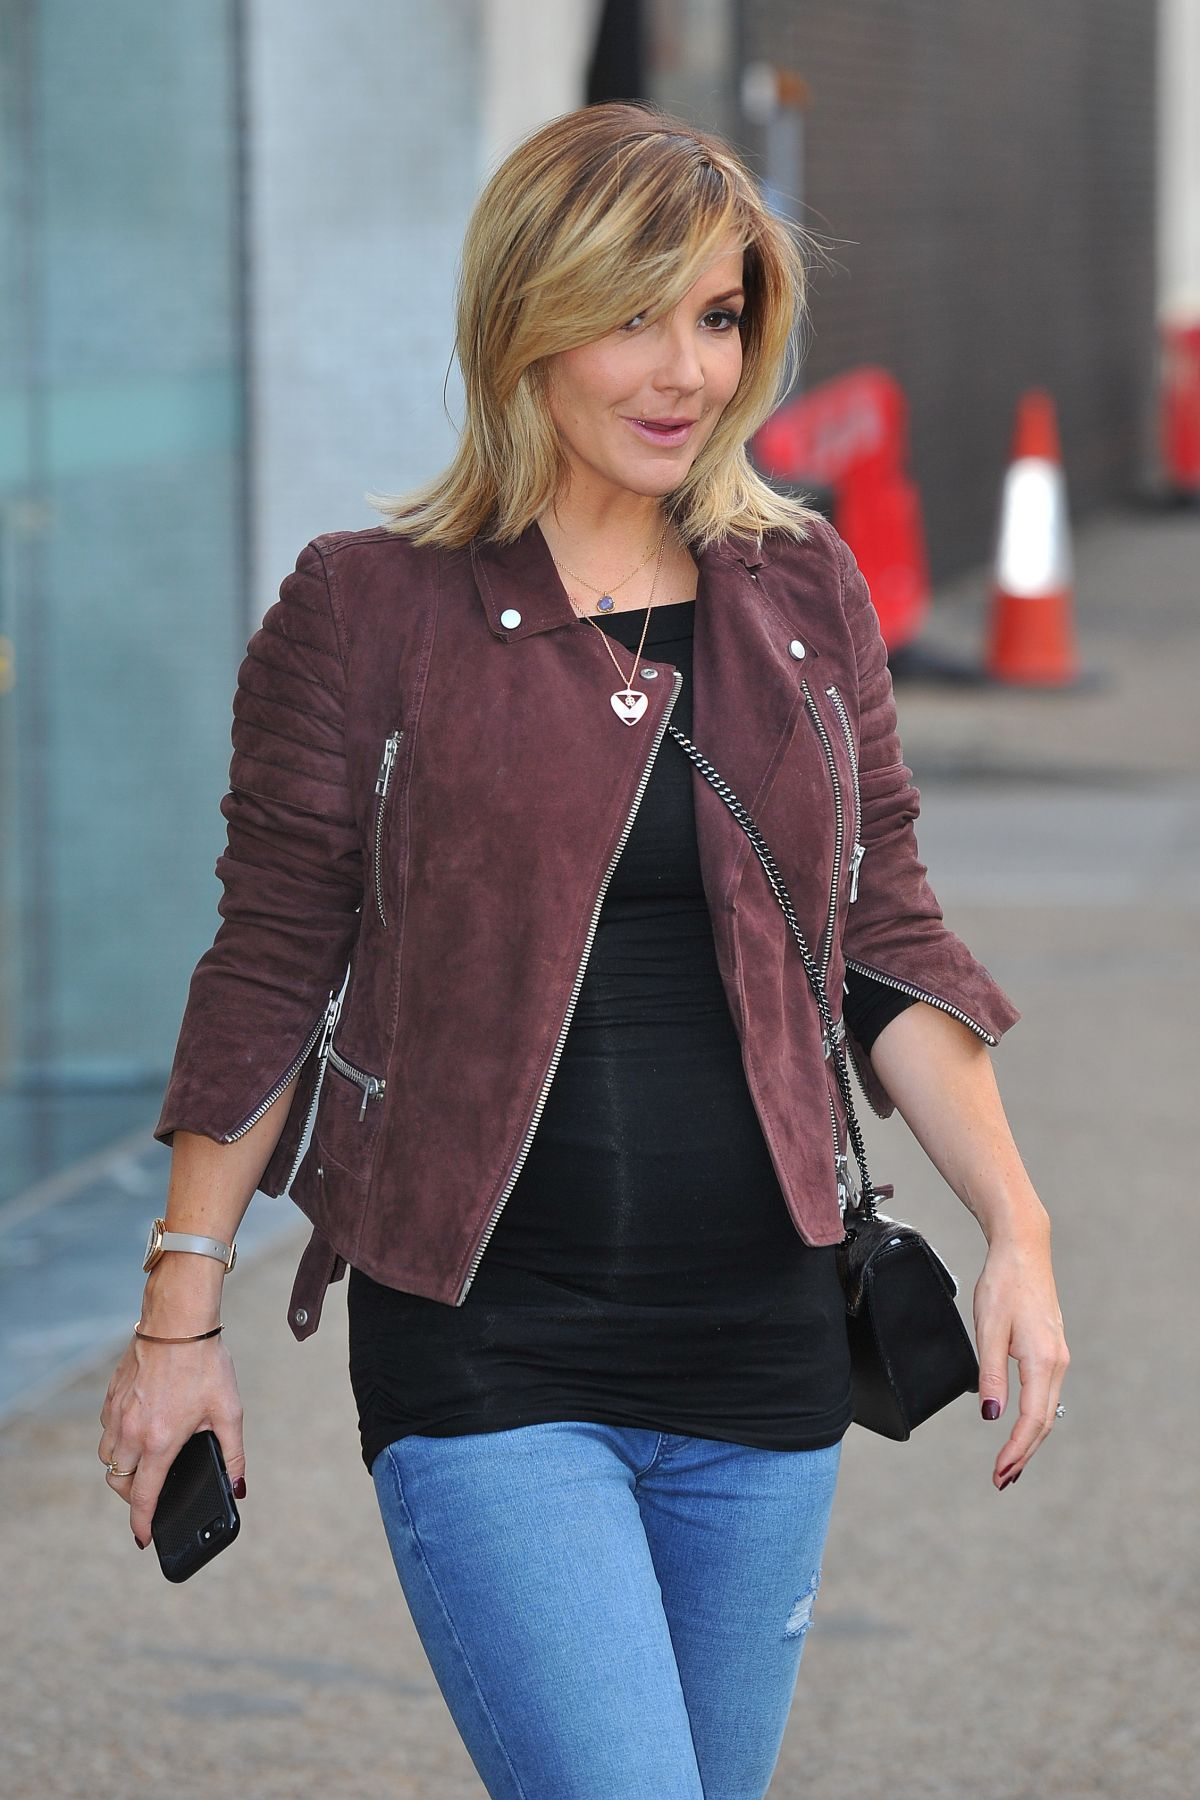 HELEN SKELTON at ITV Studio in London 02/20/2017